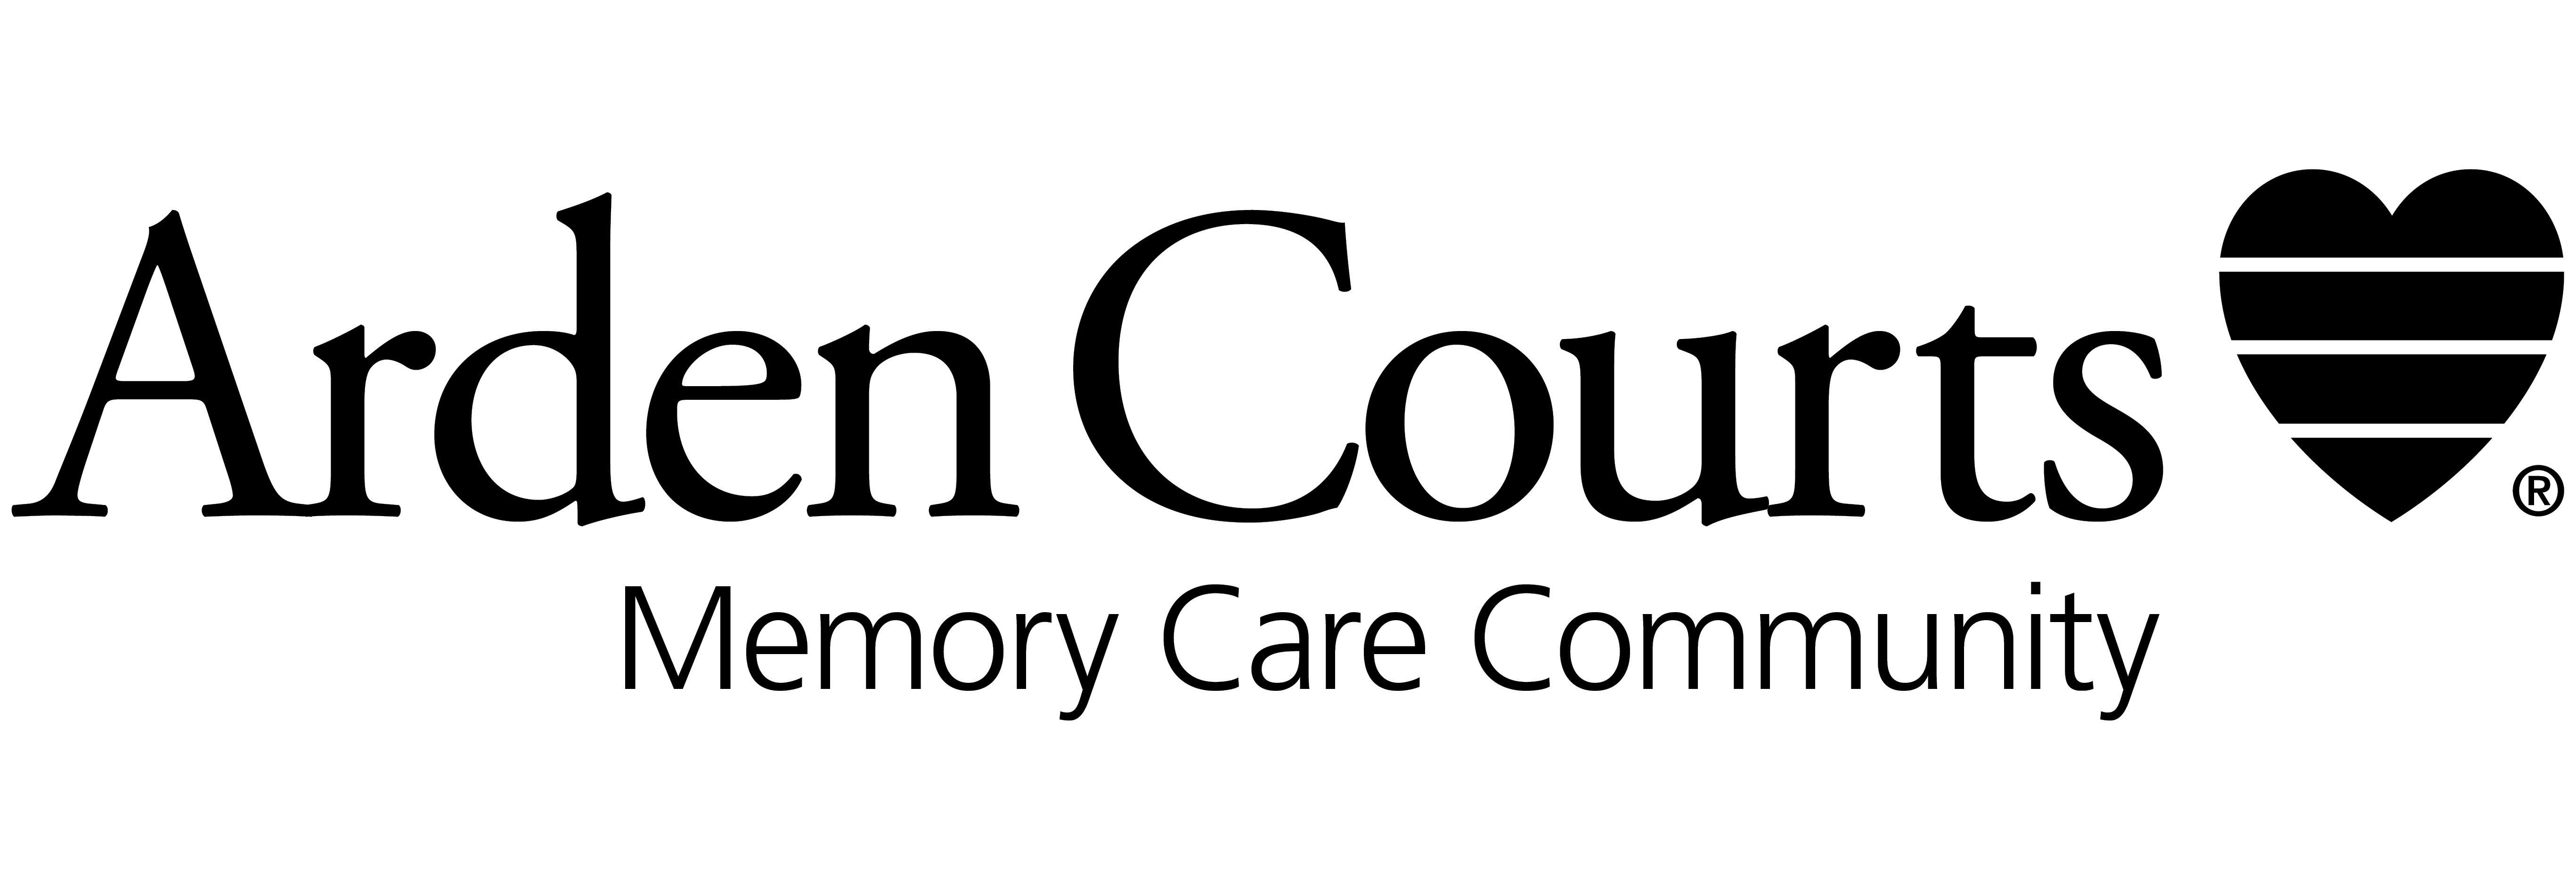 Arden Courts: Memory Care Community